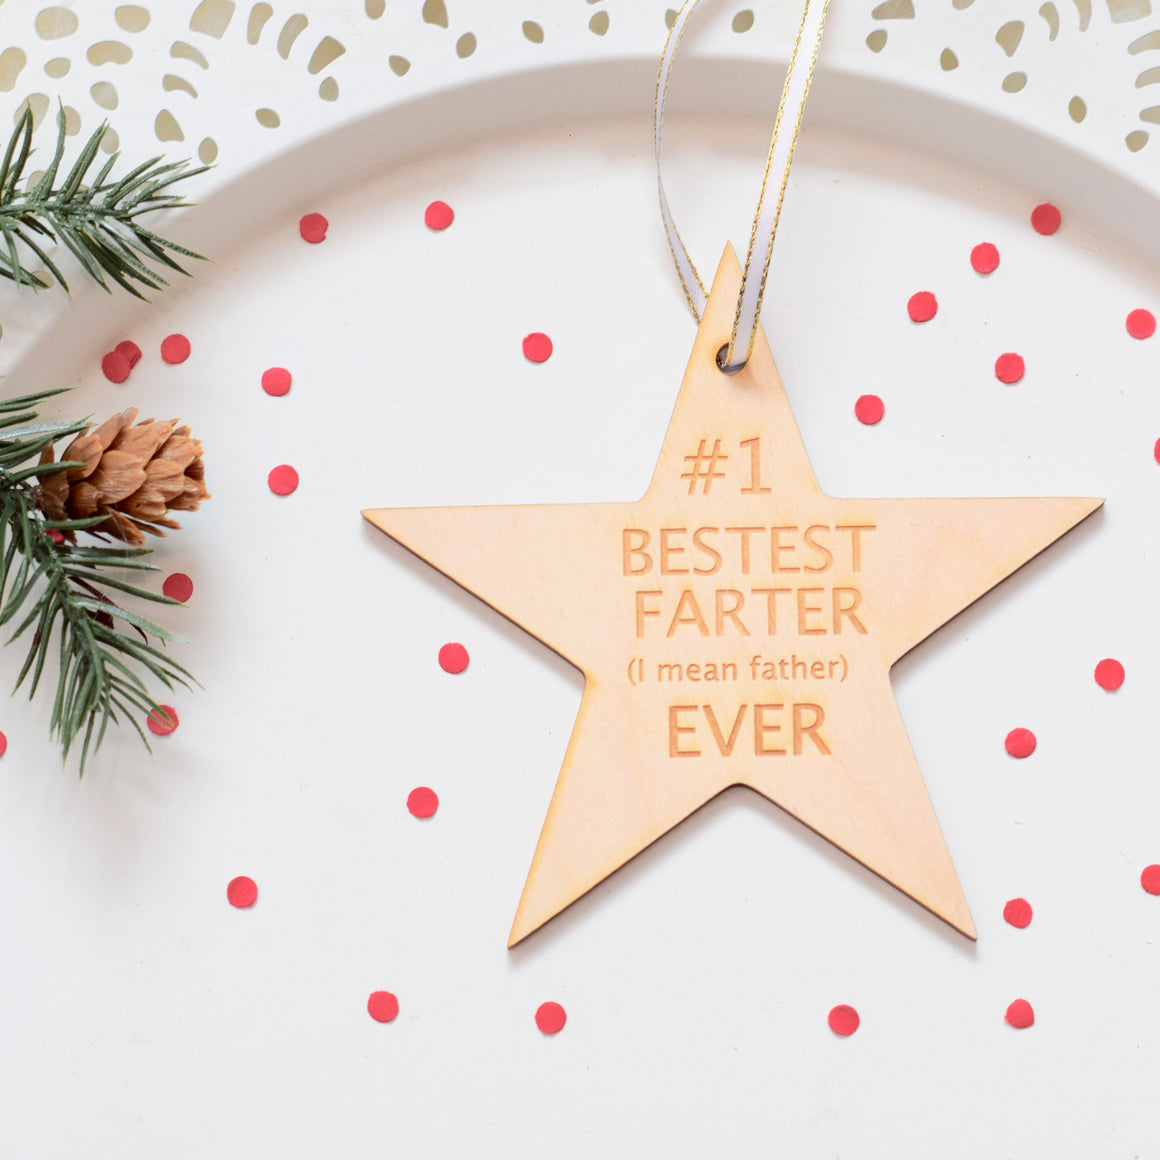 Star Christmas Ornament that says #1 bestest farter (I mean father) ever placed on a white plate with confetti